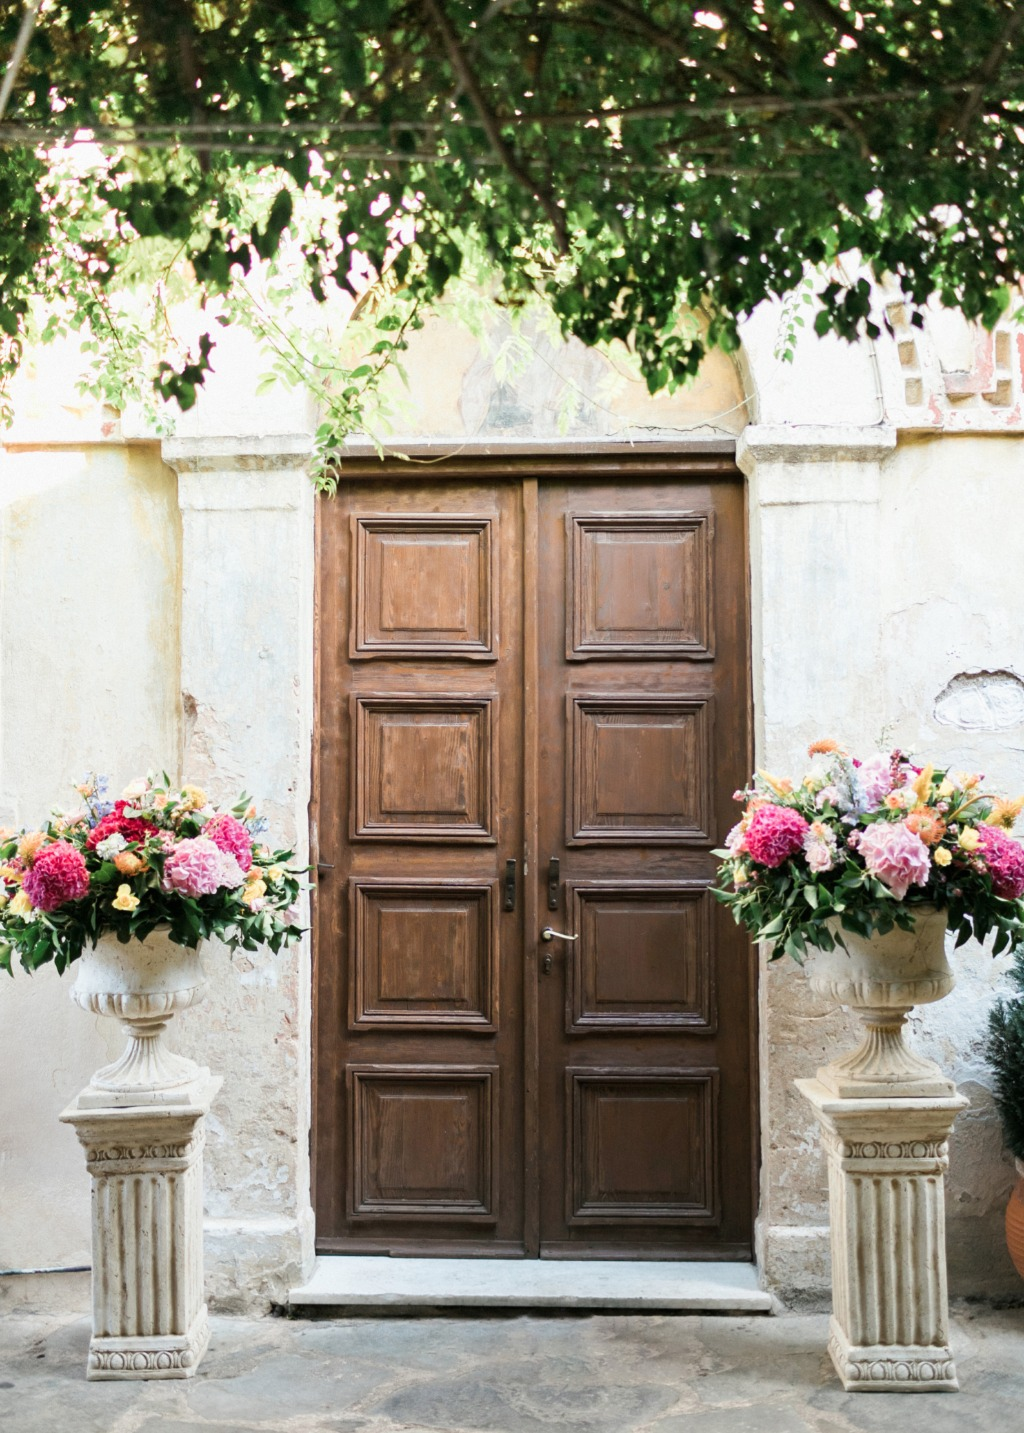 That pillars with colorful flowers looks great to this Byzantine church door! .